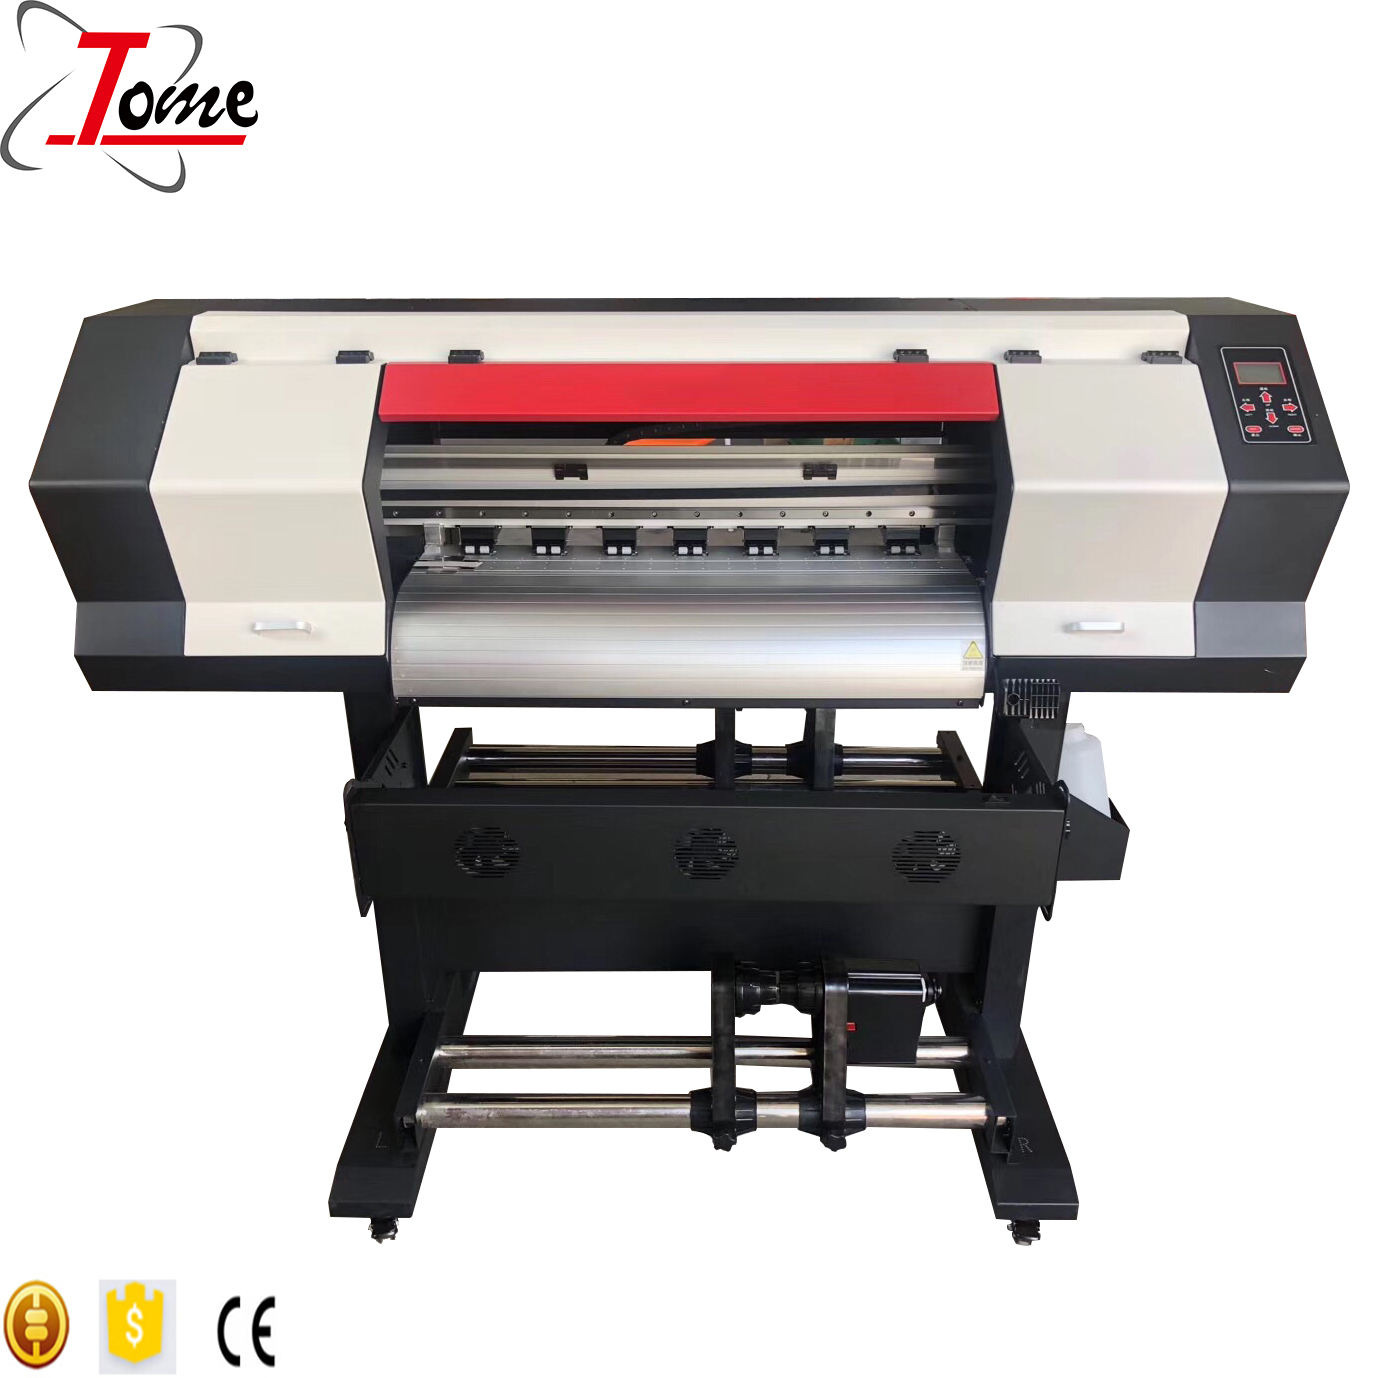 70cm xp600 dx11 dx6 head eco solvent plotter printing and cutting machine